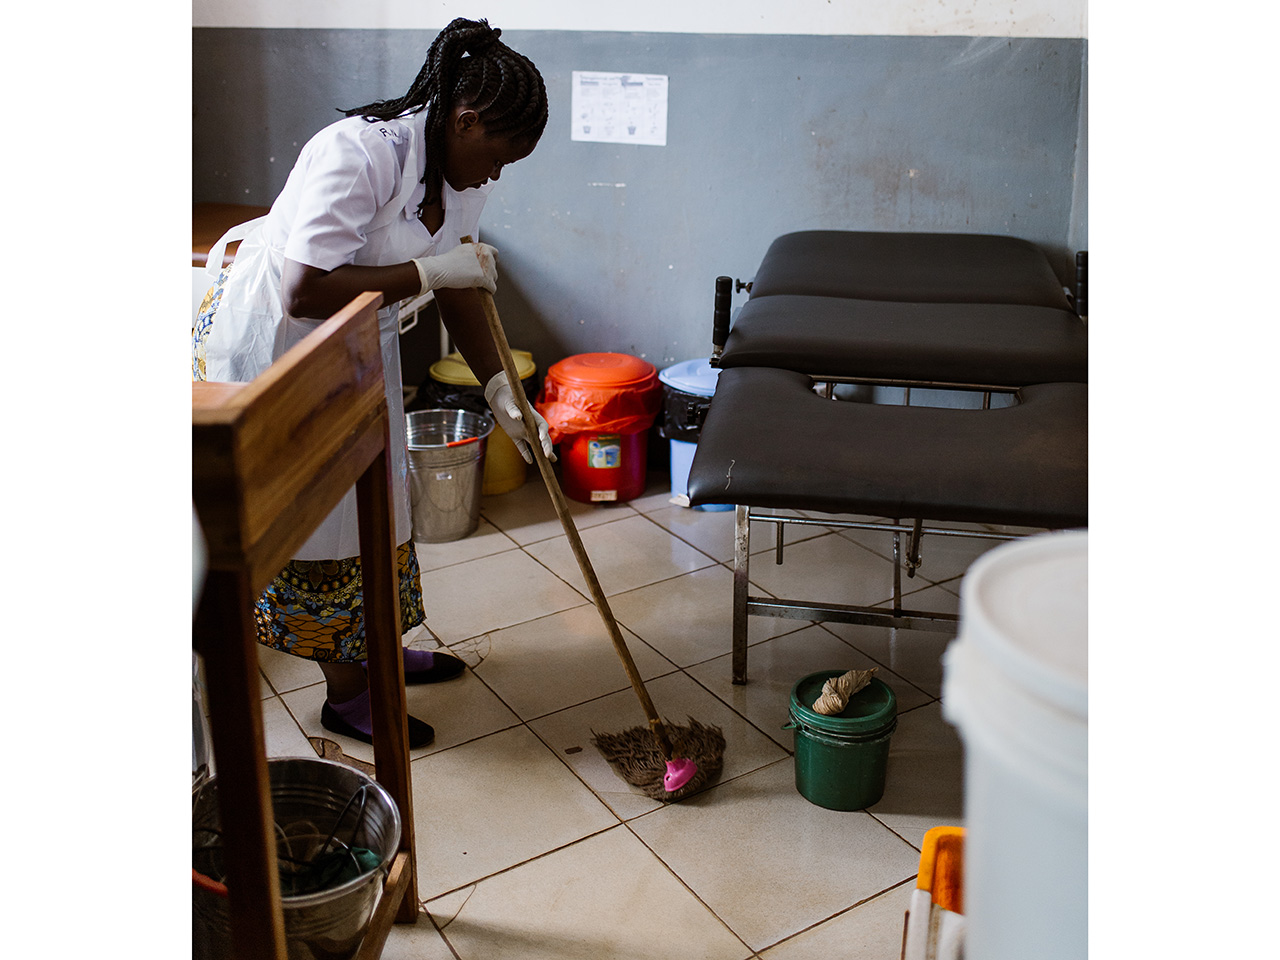 Nurse cleaning the floor after birth